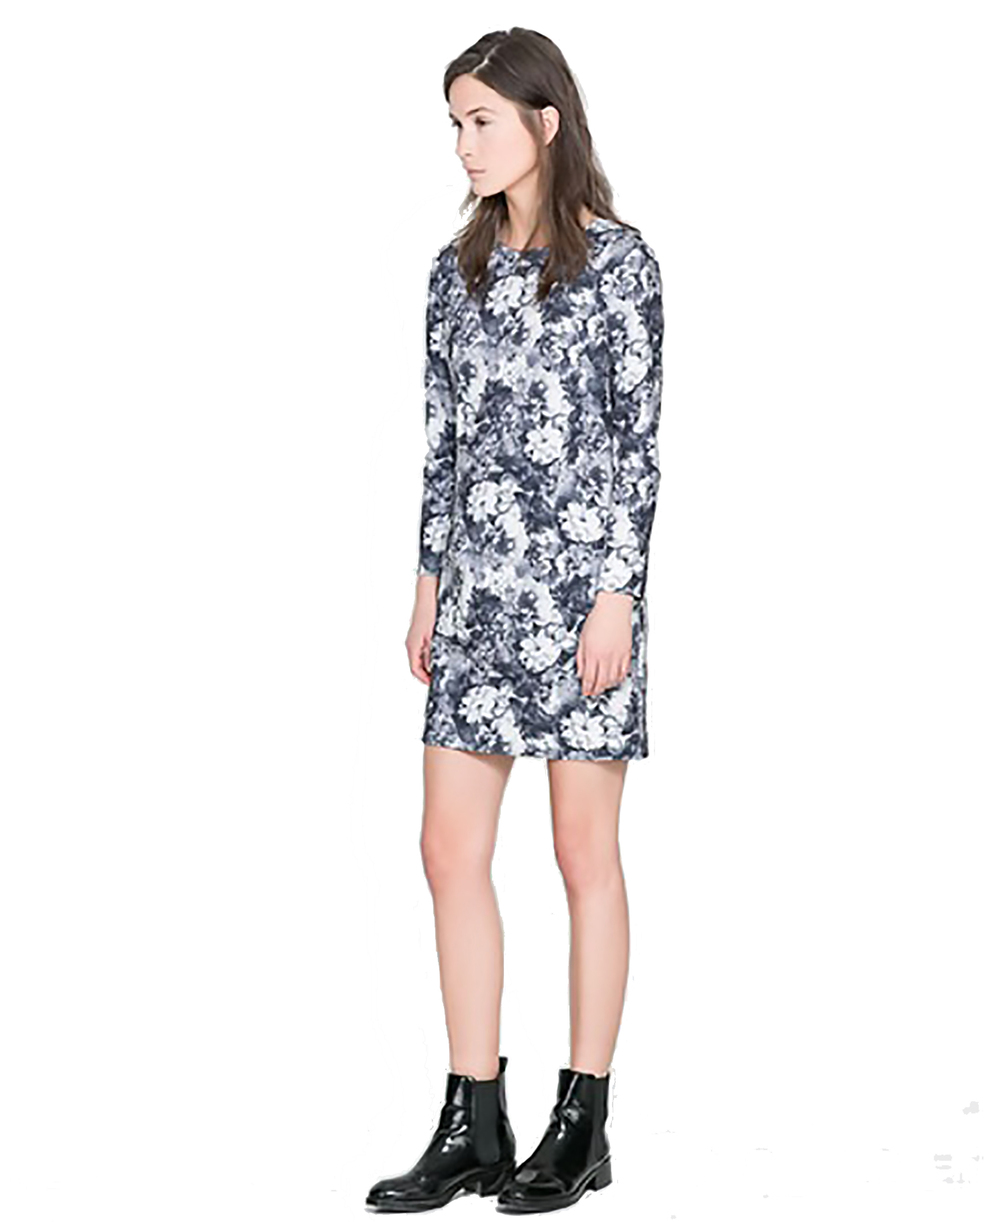 zara printed technical dress winter florals 1500 retouched.jpg